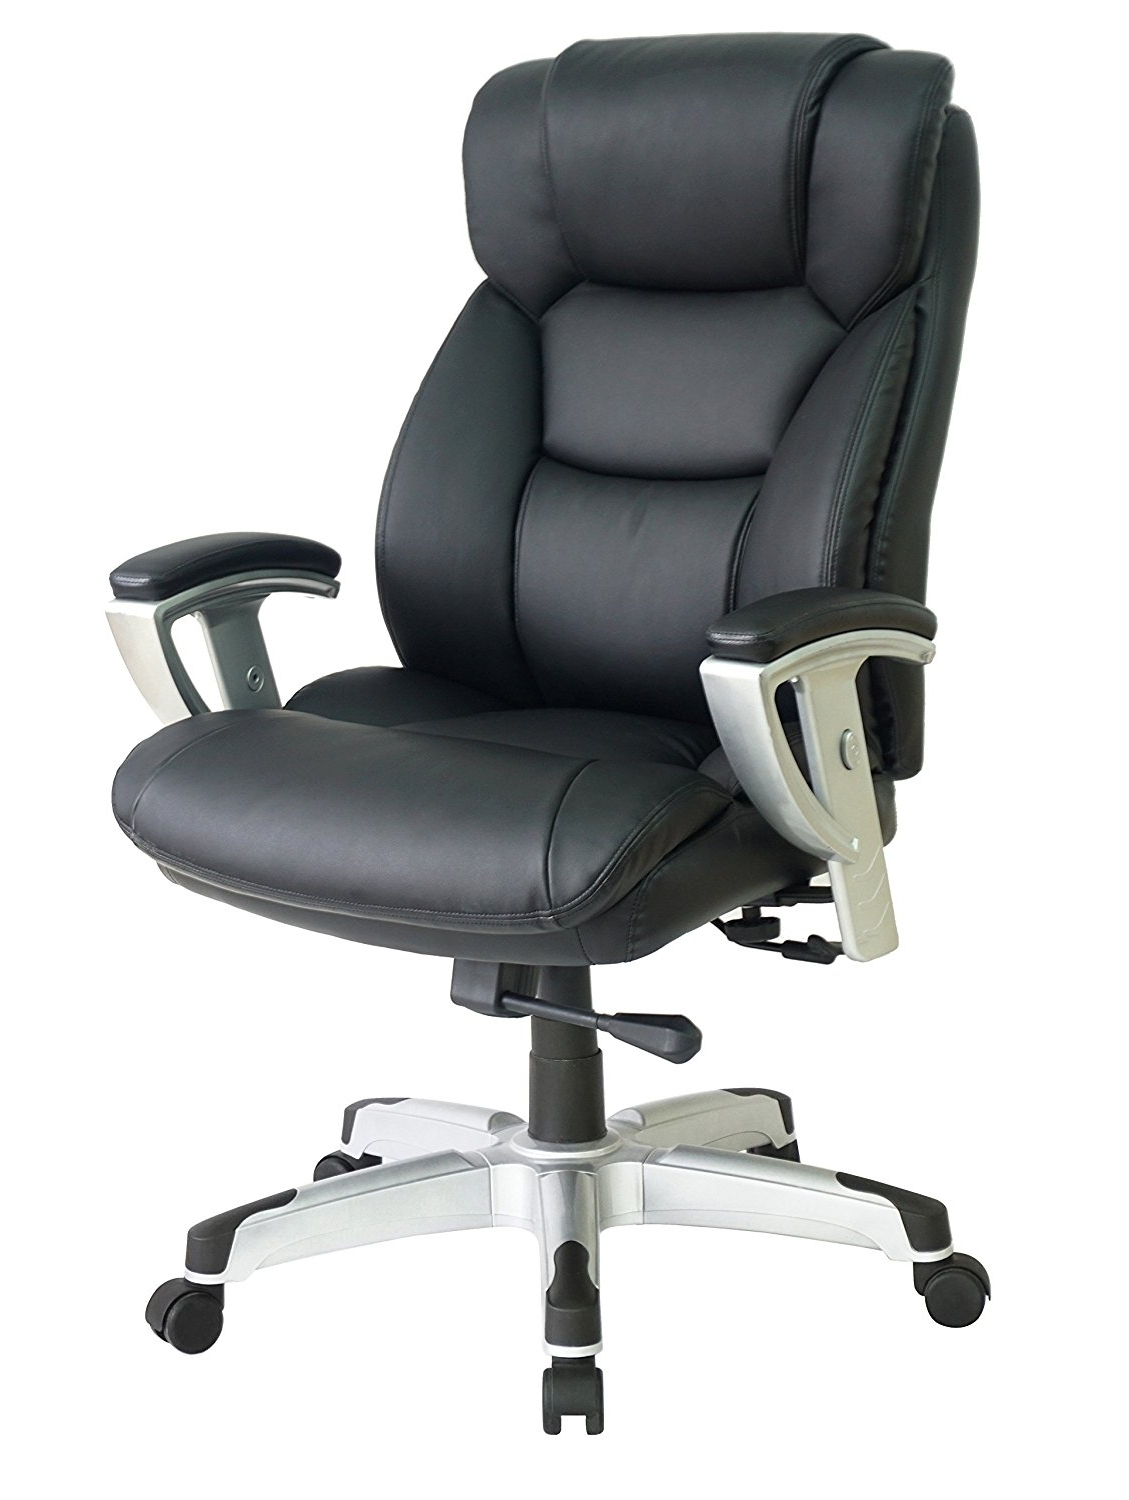 Most Current Executive Office Racing Chairs Pertaining To 10 Big & Tall Office Chairs For Extra Large Comfort (View 9 of 20)